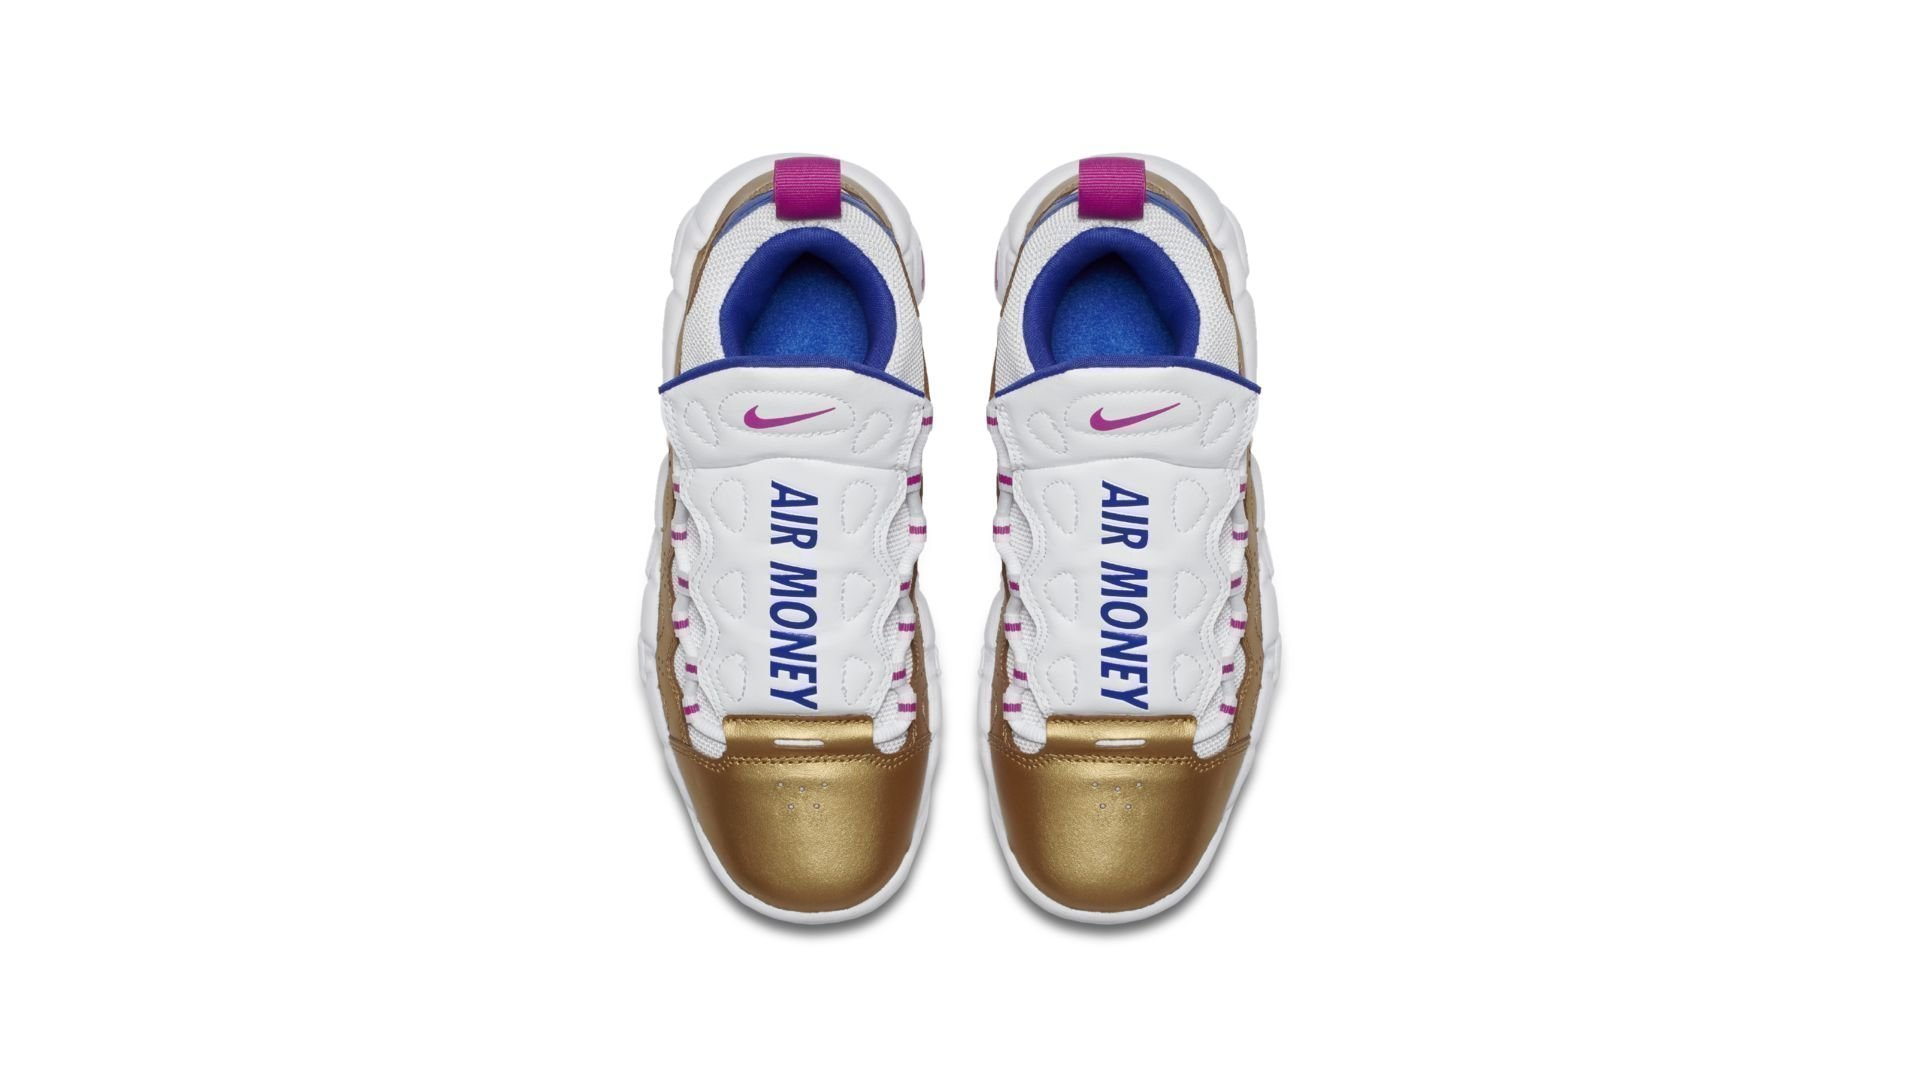 Nike Air More Money Peanut Butter & Jelly (GS) (AH5215-101)